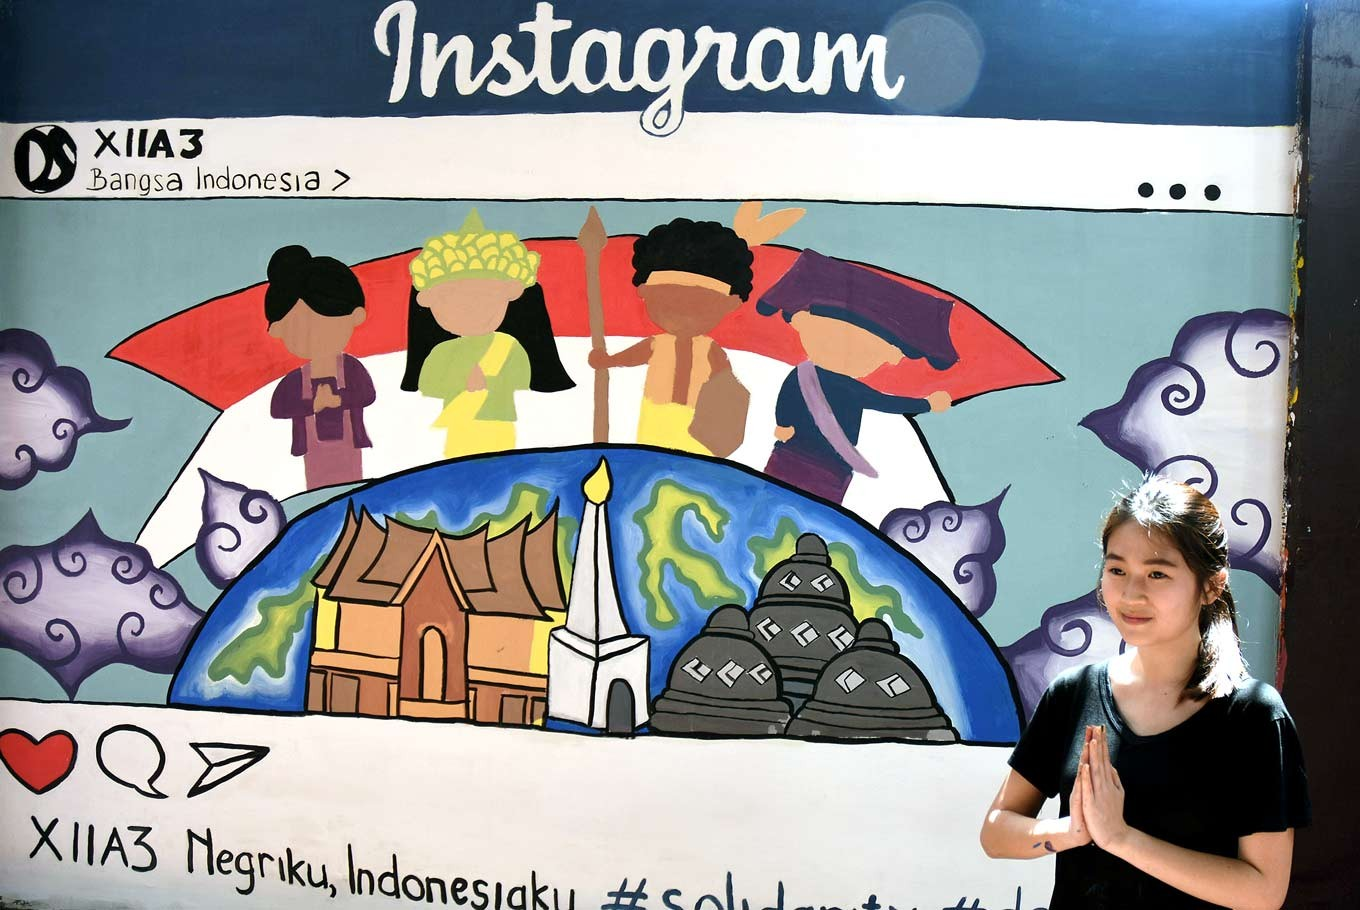 Socmed savvy: Valerie, a senior, poses in front a mural, which depicts an Instagram screen interface.